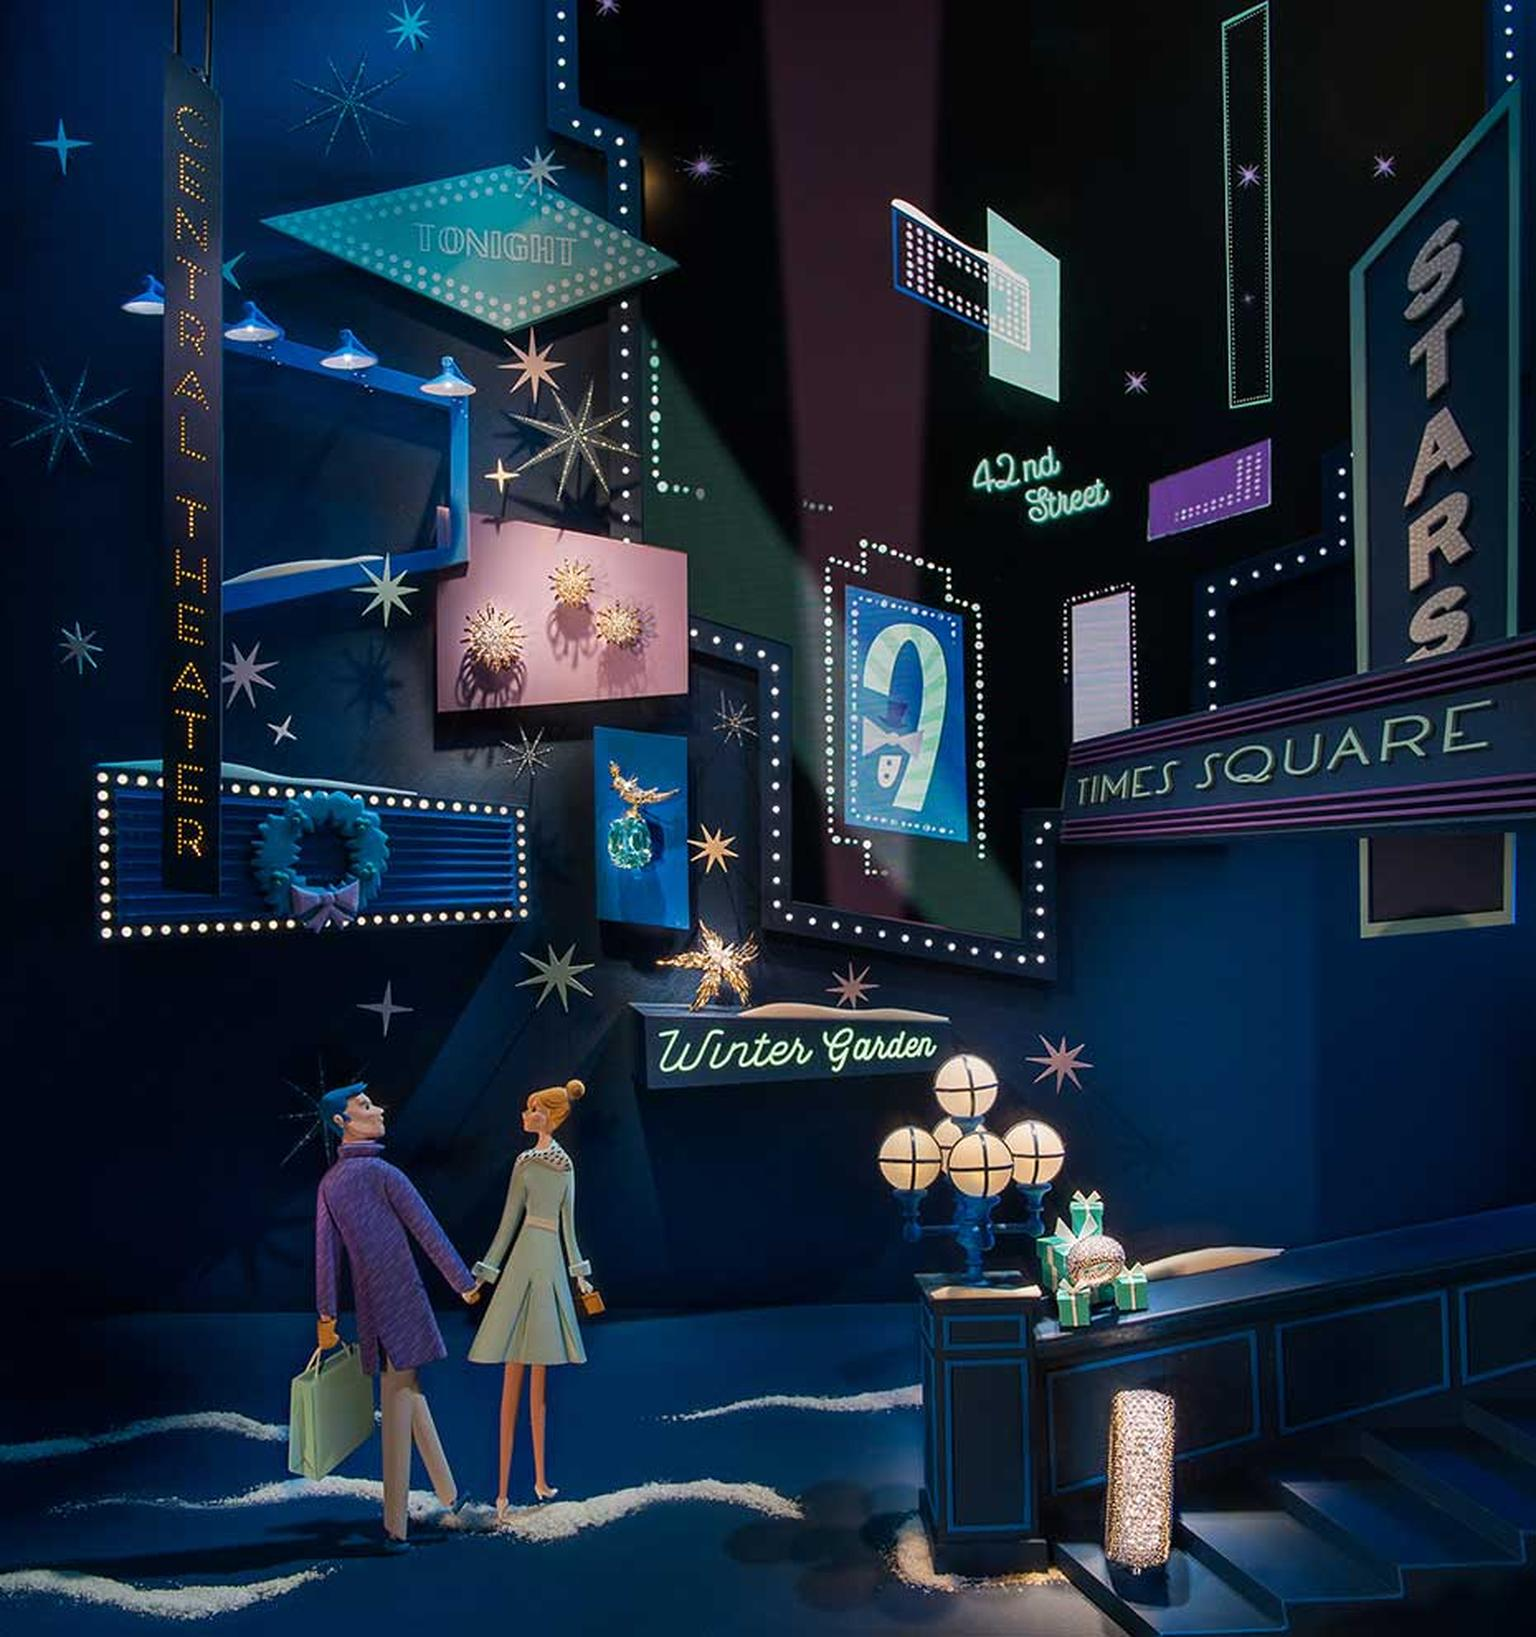 The magic of Times Square at Christmas is captured in the festive window displays at Tiffany's Bond Street boutique.